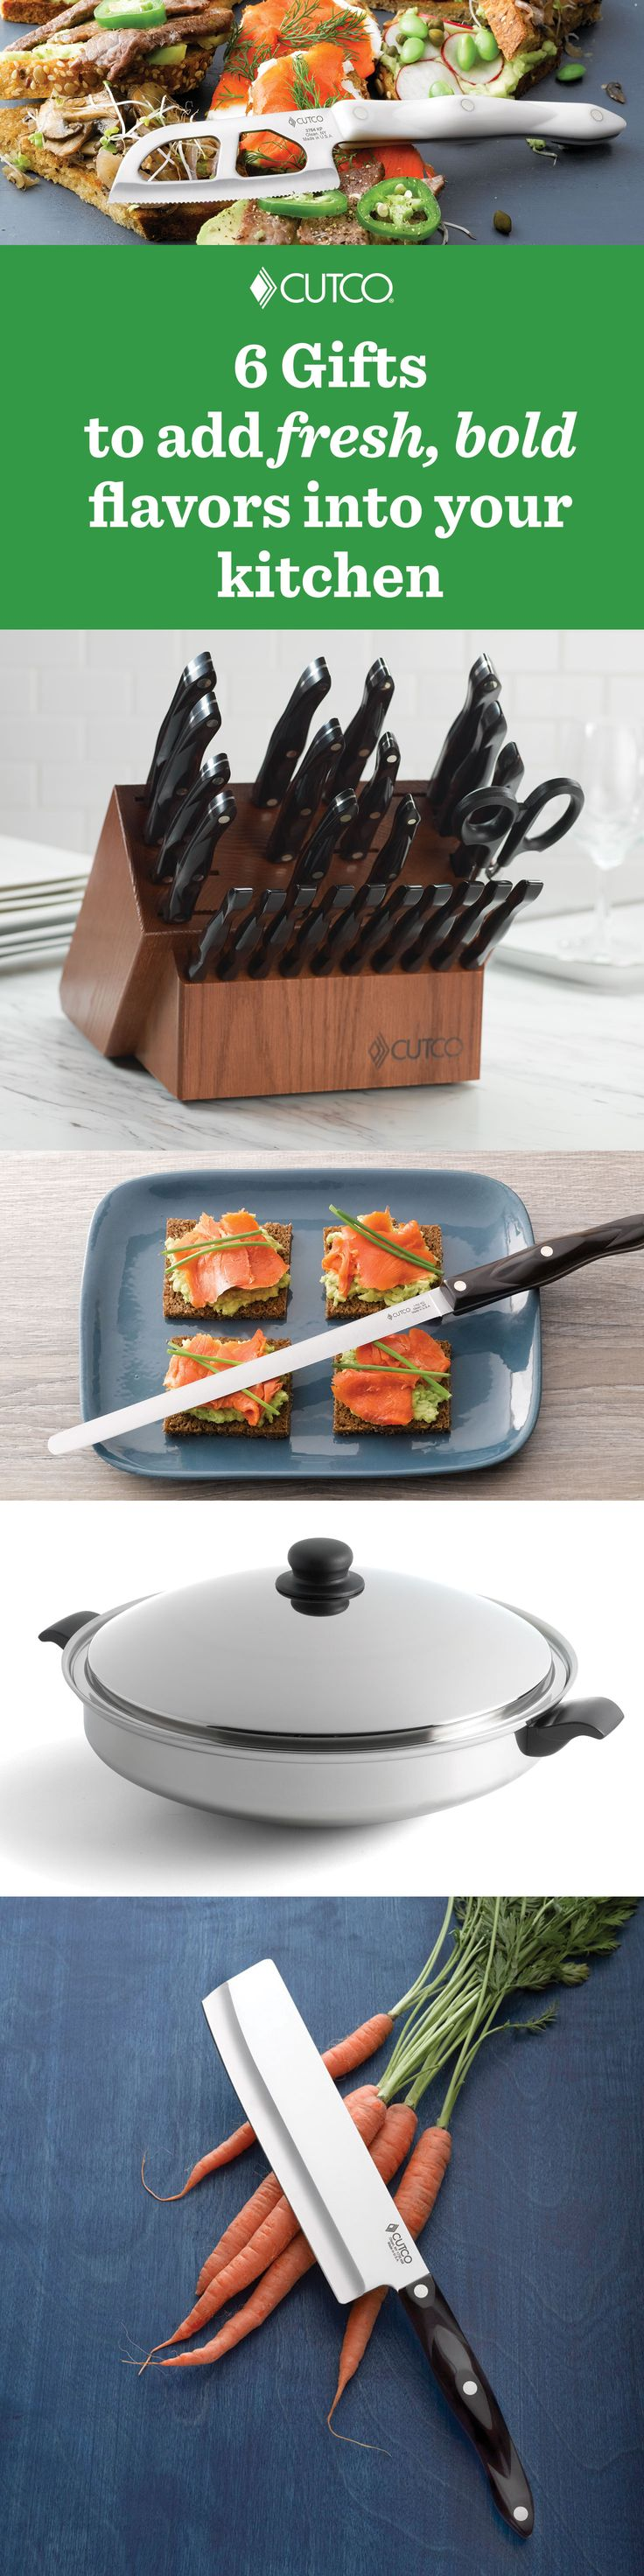 Do They Need To Add Some Fresh And Bold Favors Into Their Kitchen Check Out